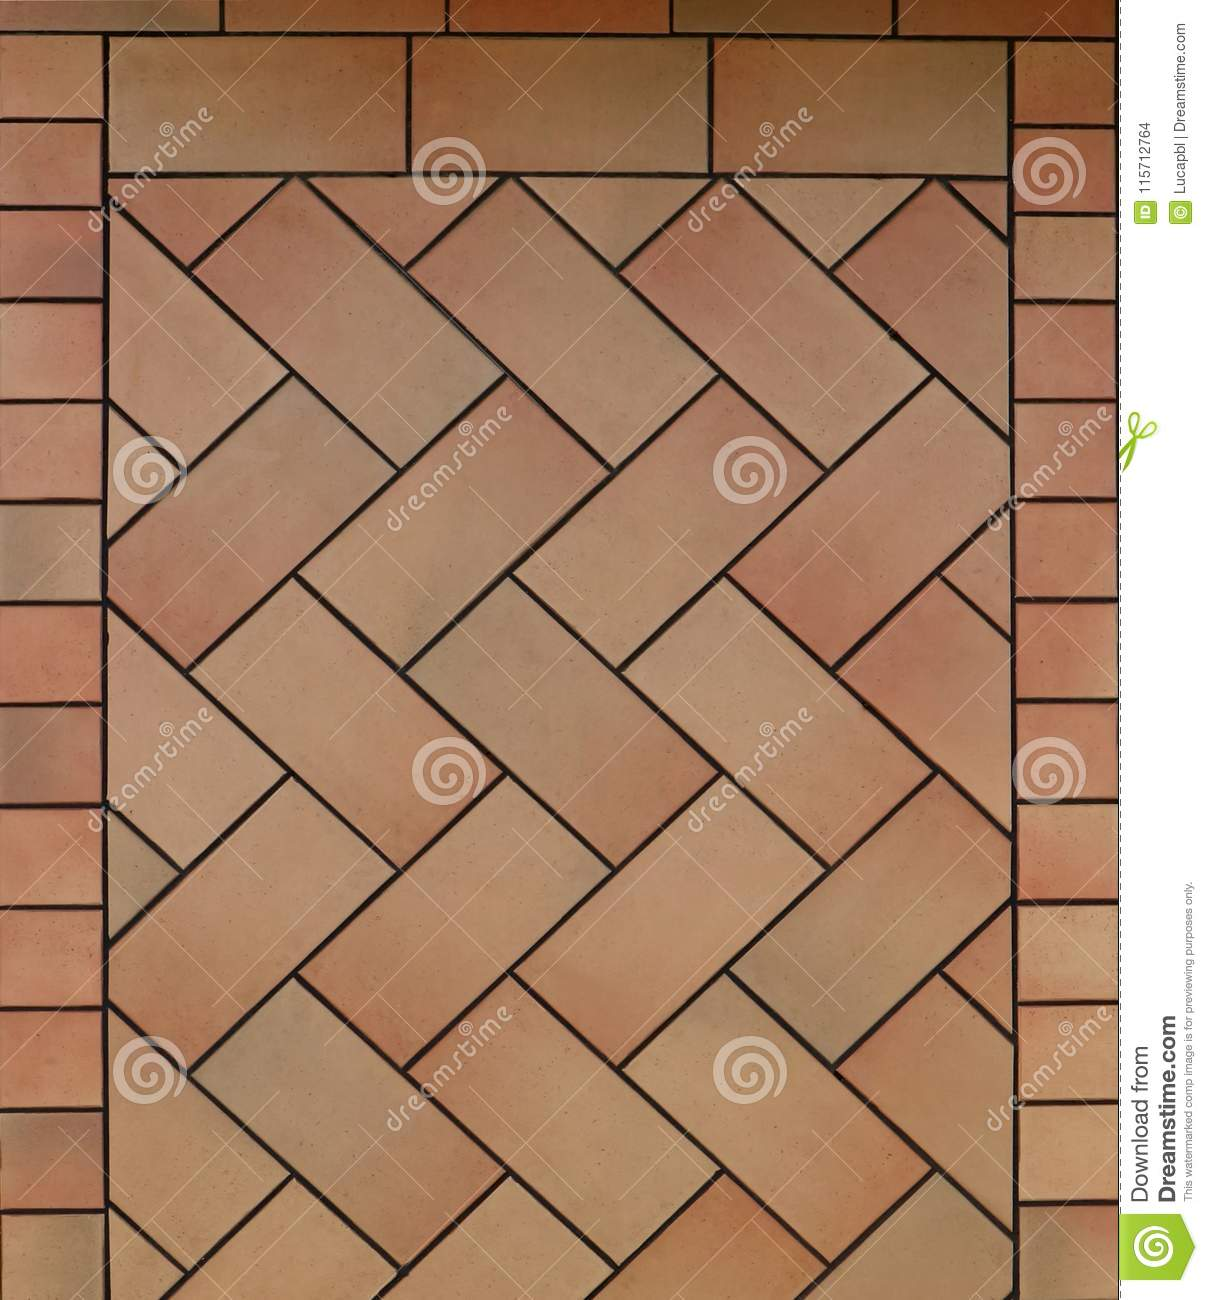 Terracotta Floor With Tiles Arranged With Different Patterns